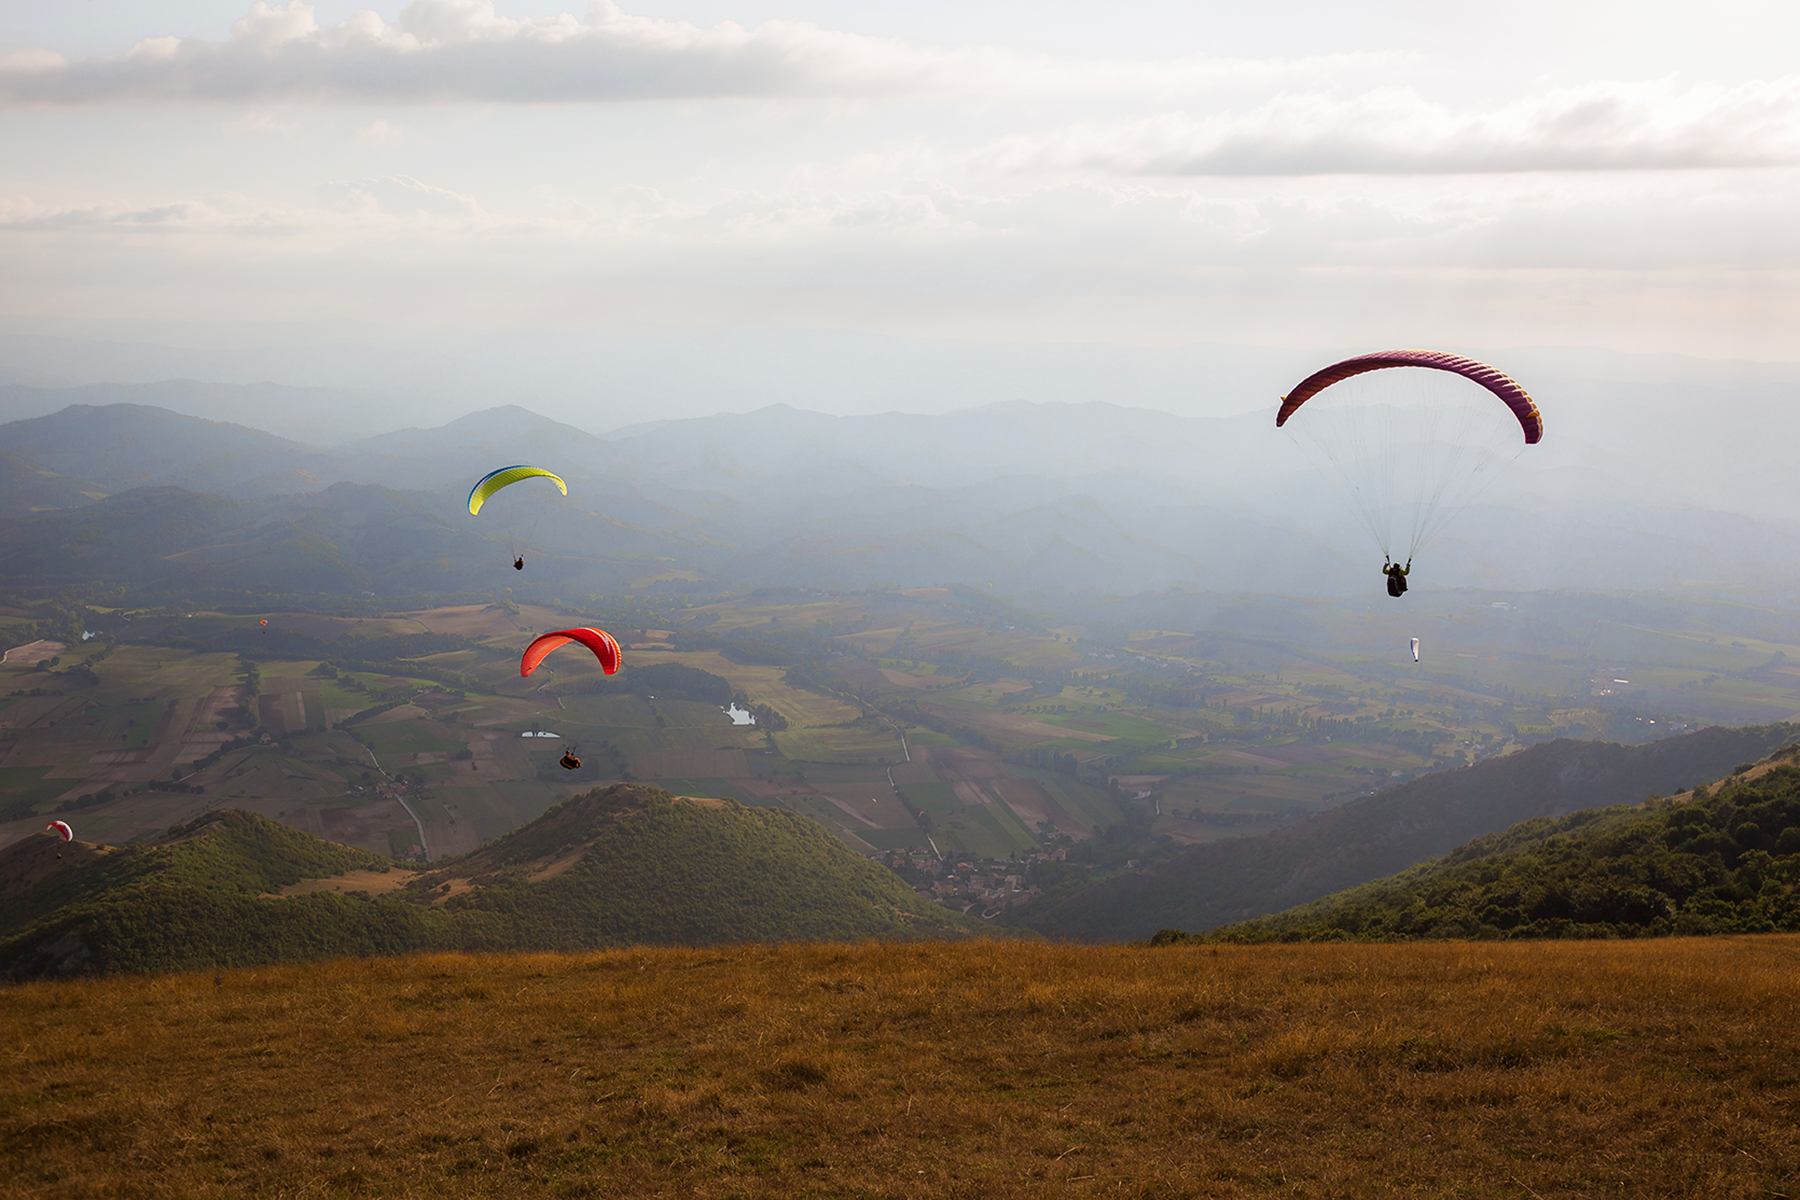 Paragliders flying over a mountain scenery in Umbria